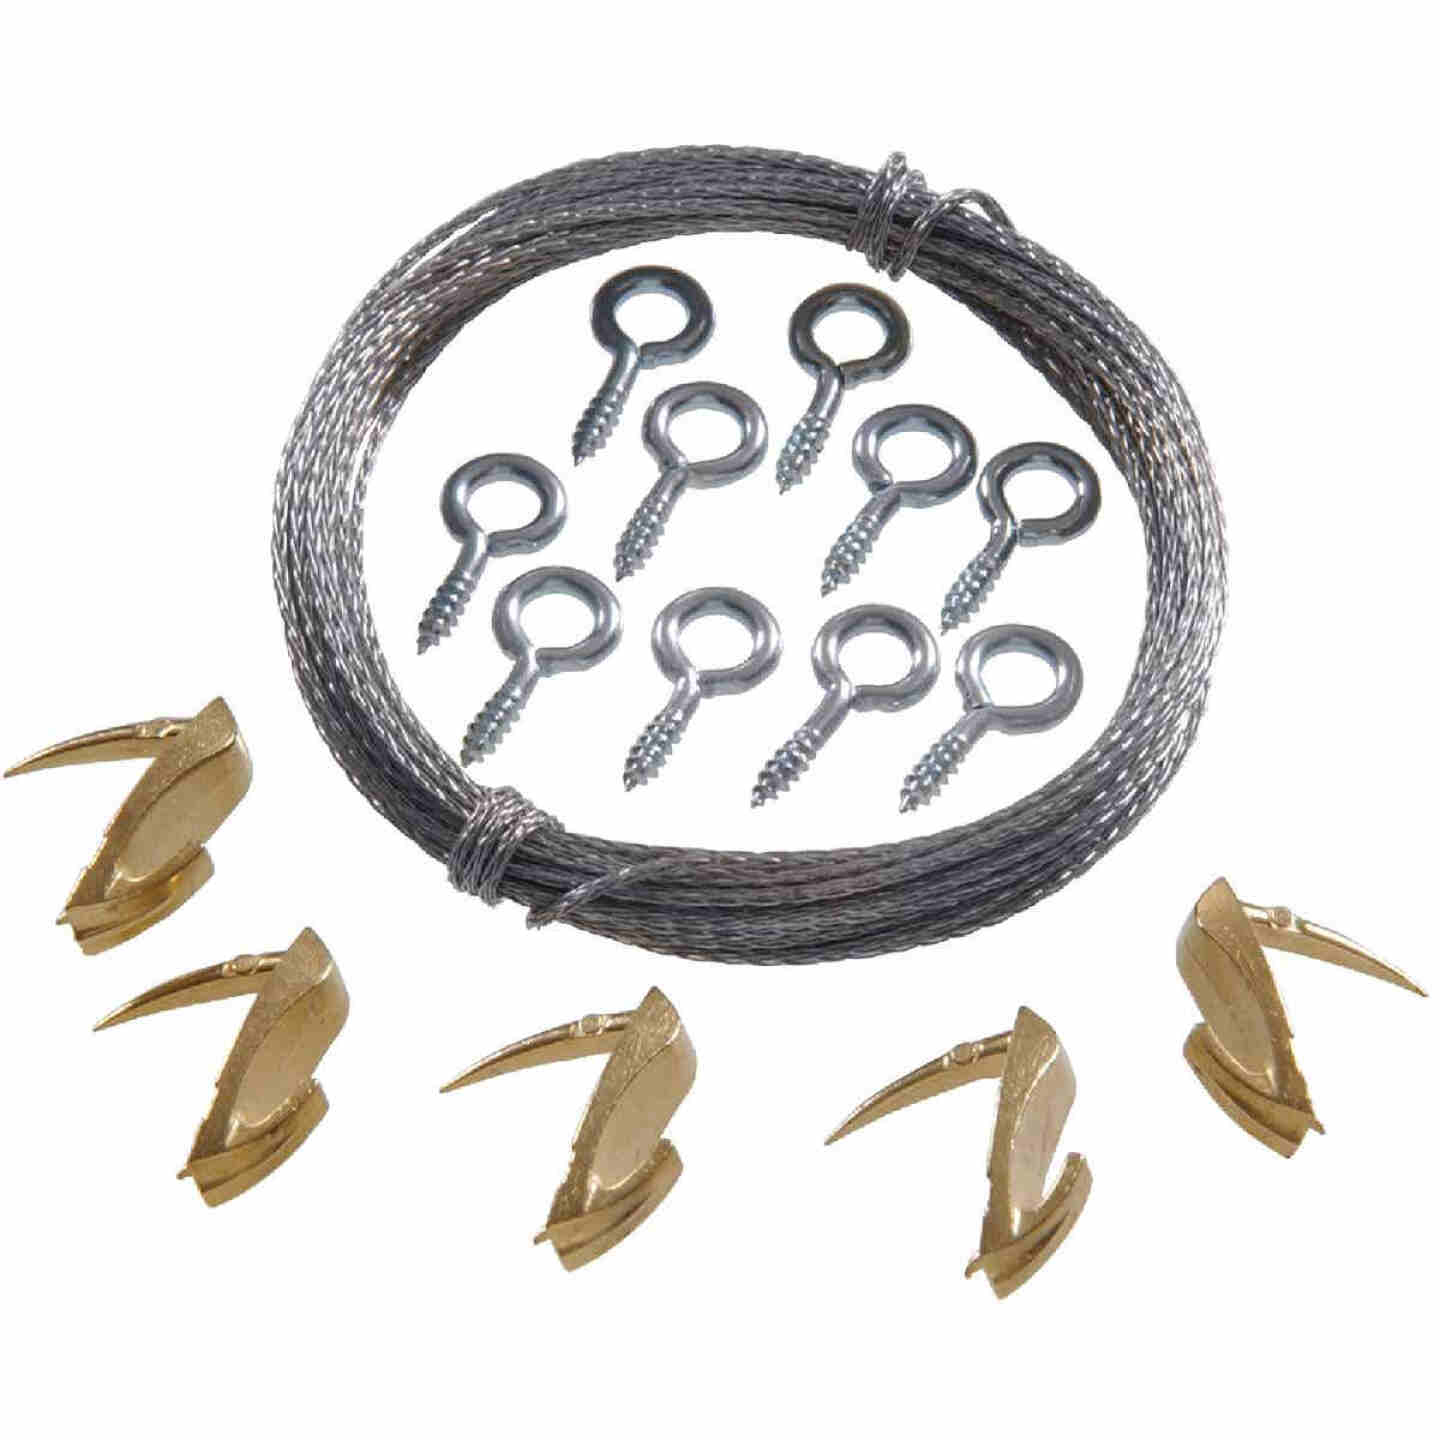 Hillman Anchor Wire 15 Lb. Capacity Wallbiter Picture Hanging Kit Image 1